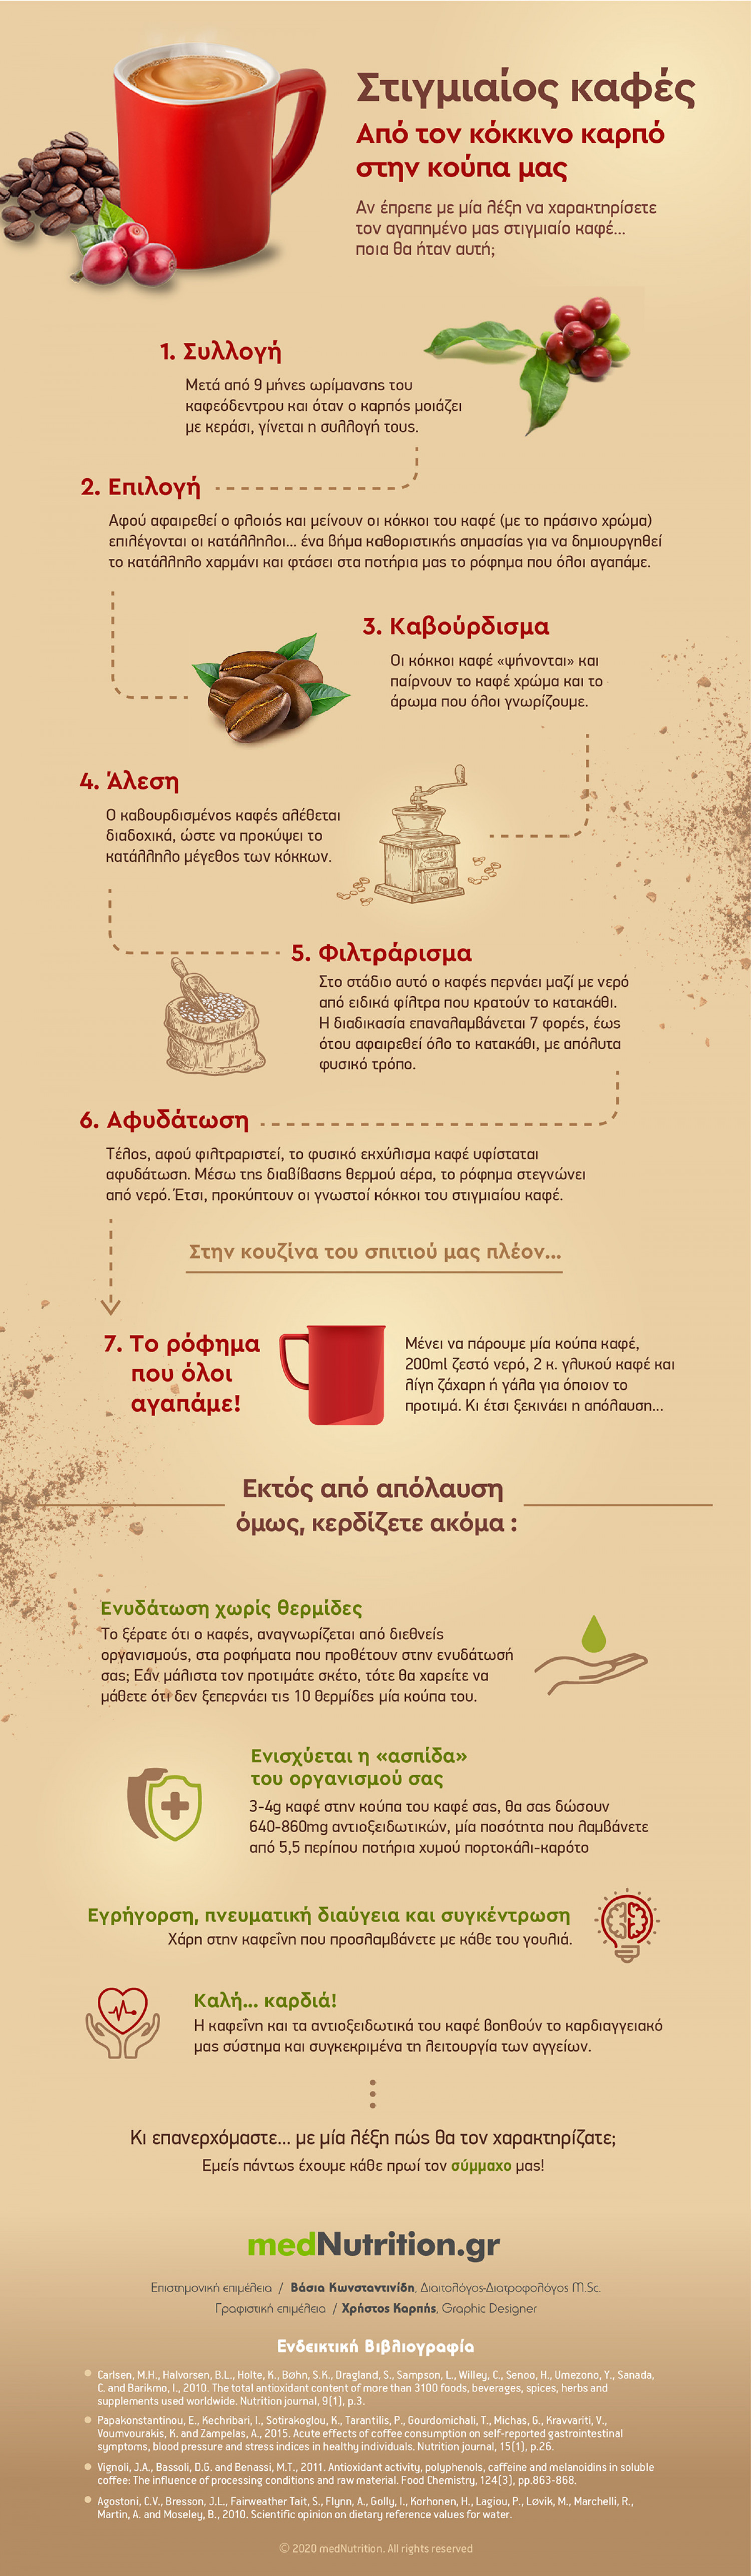 Instant coffee: Production and benefits Infographic